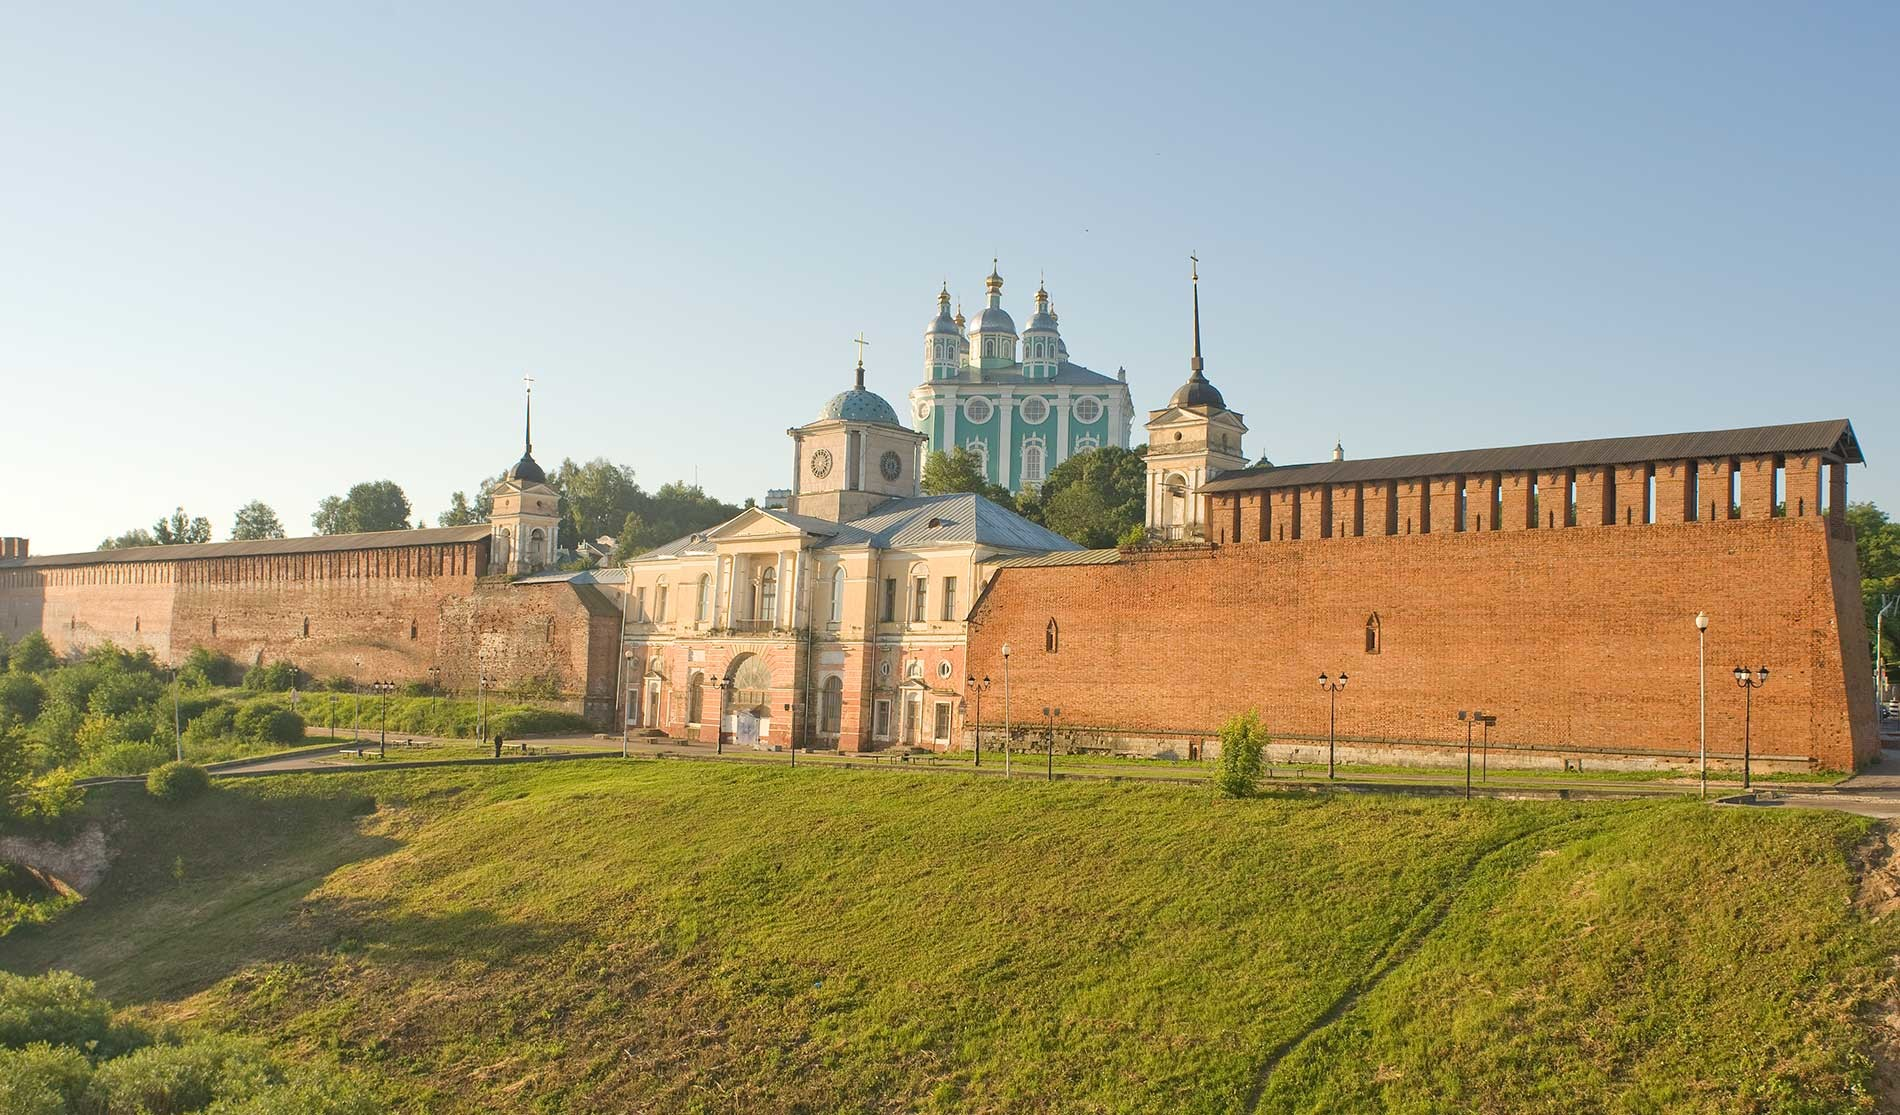 Smolensk citadel. North wall and Gate Church of the Hodegetria Icon of the Virgin. Northwest view from Central Bridge over Dnieper River. July 1, 2014